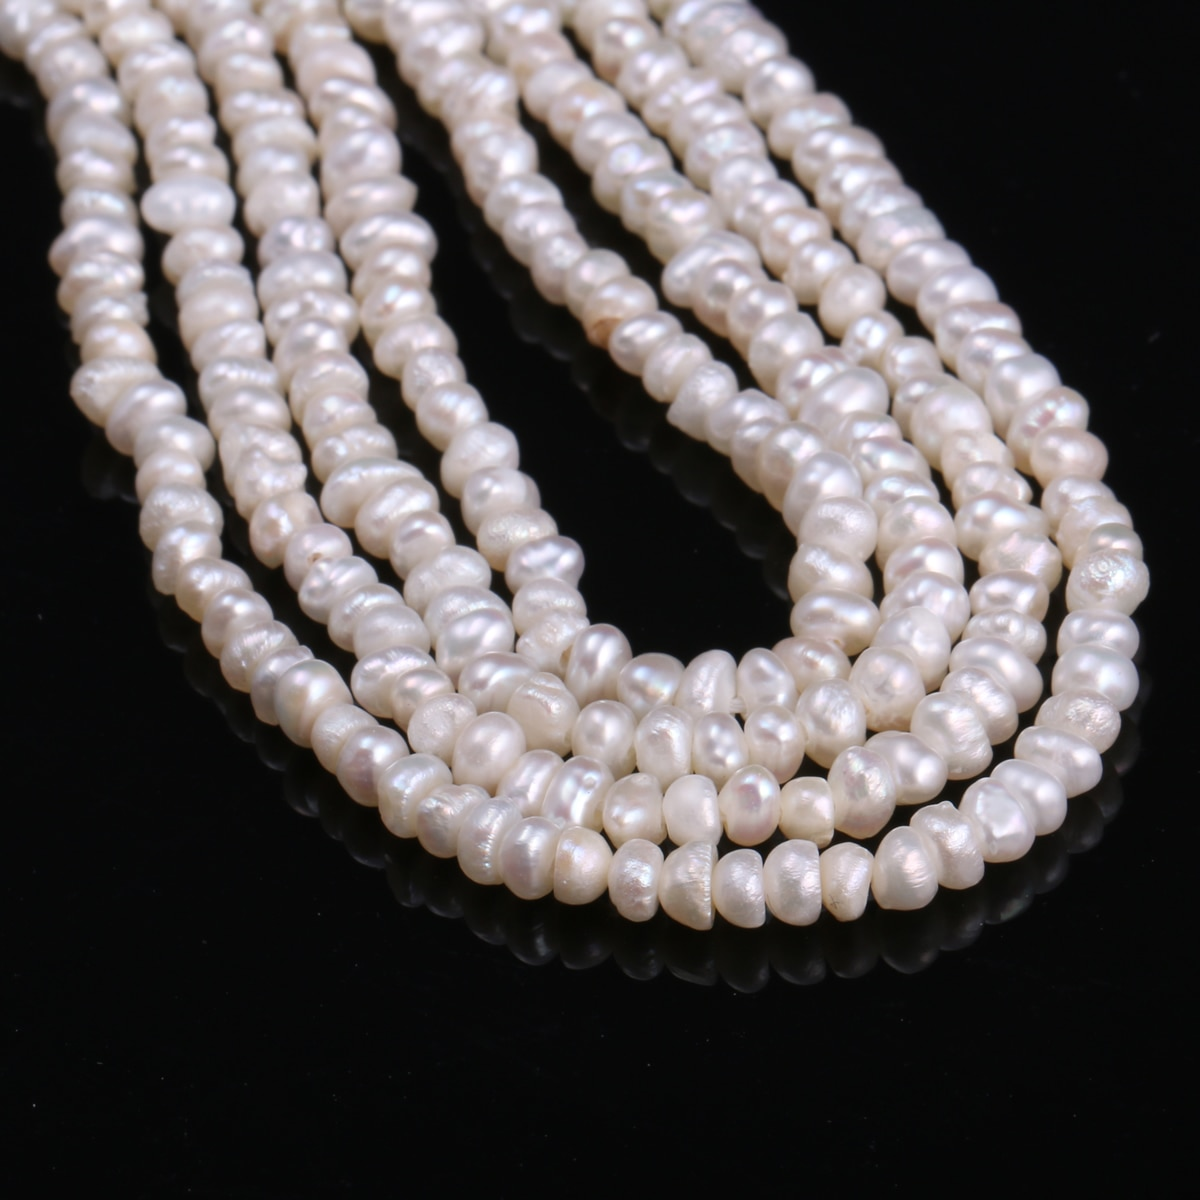 Cultured Pearl Beads Irregular Natural Freshwater Pearls for Women Jewelry Making DIY Charm Necklace Bracelet 13''  - buy with discount